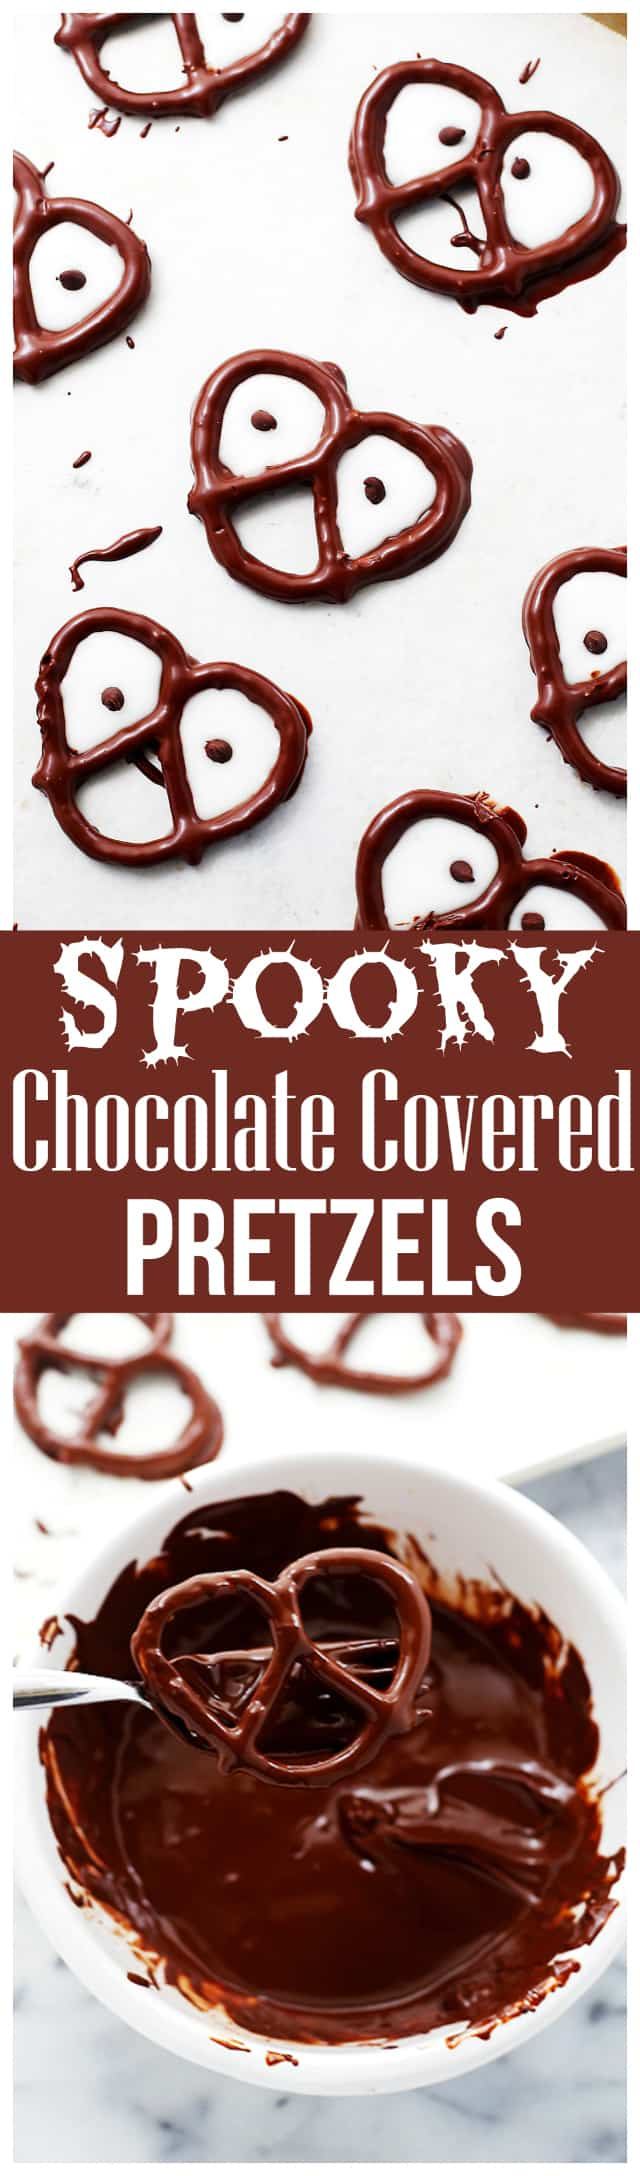 Halloween Chocolate Covered Pretzels - Easy, salty, sweet and eek! Chocolate-covered pretzels SO good IT'S scary!